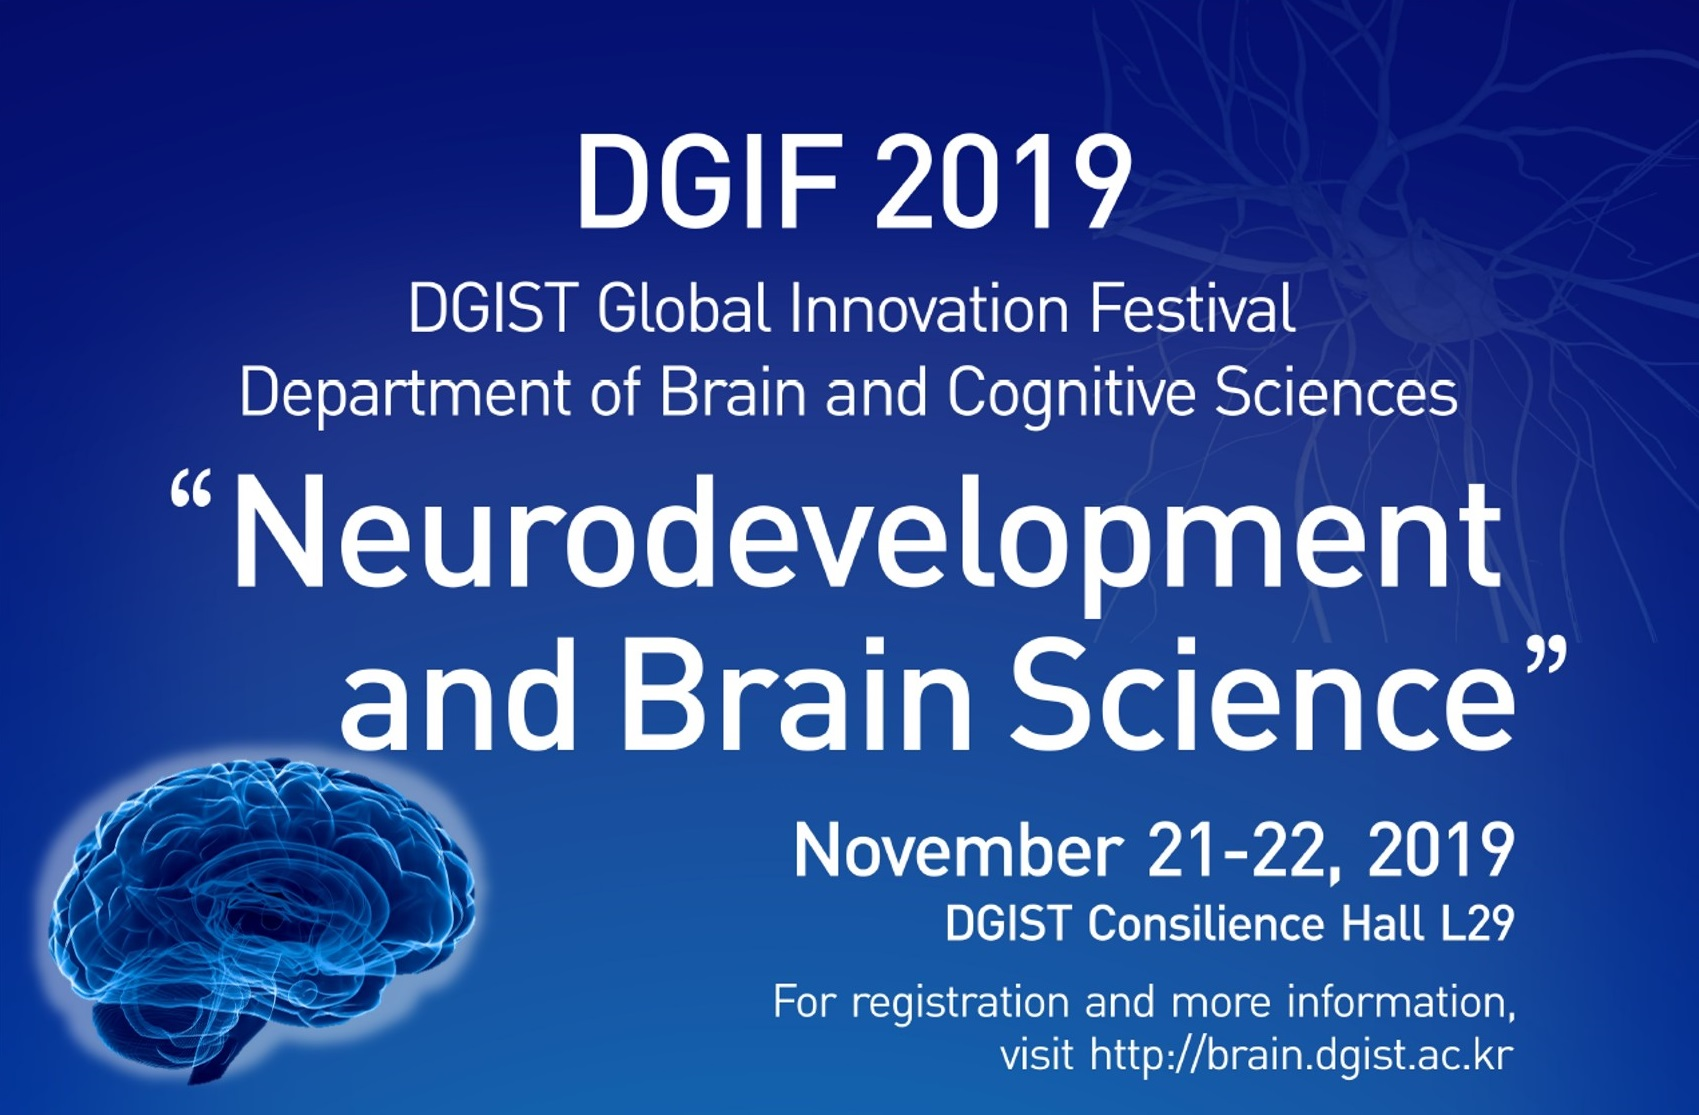 DGIF 2019 (Brain and Cognitive Sciences) 이미지